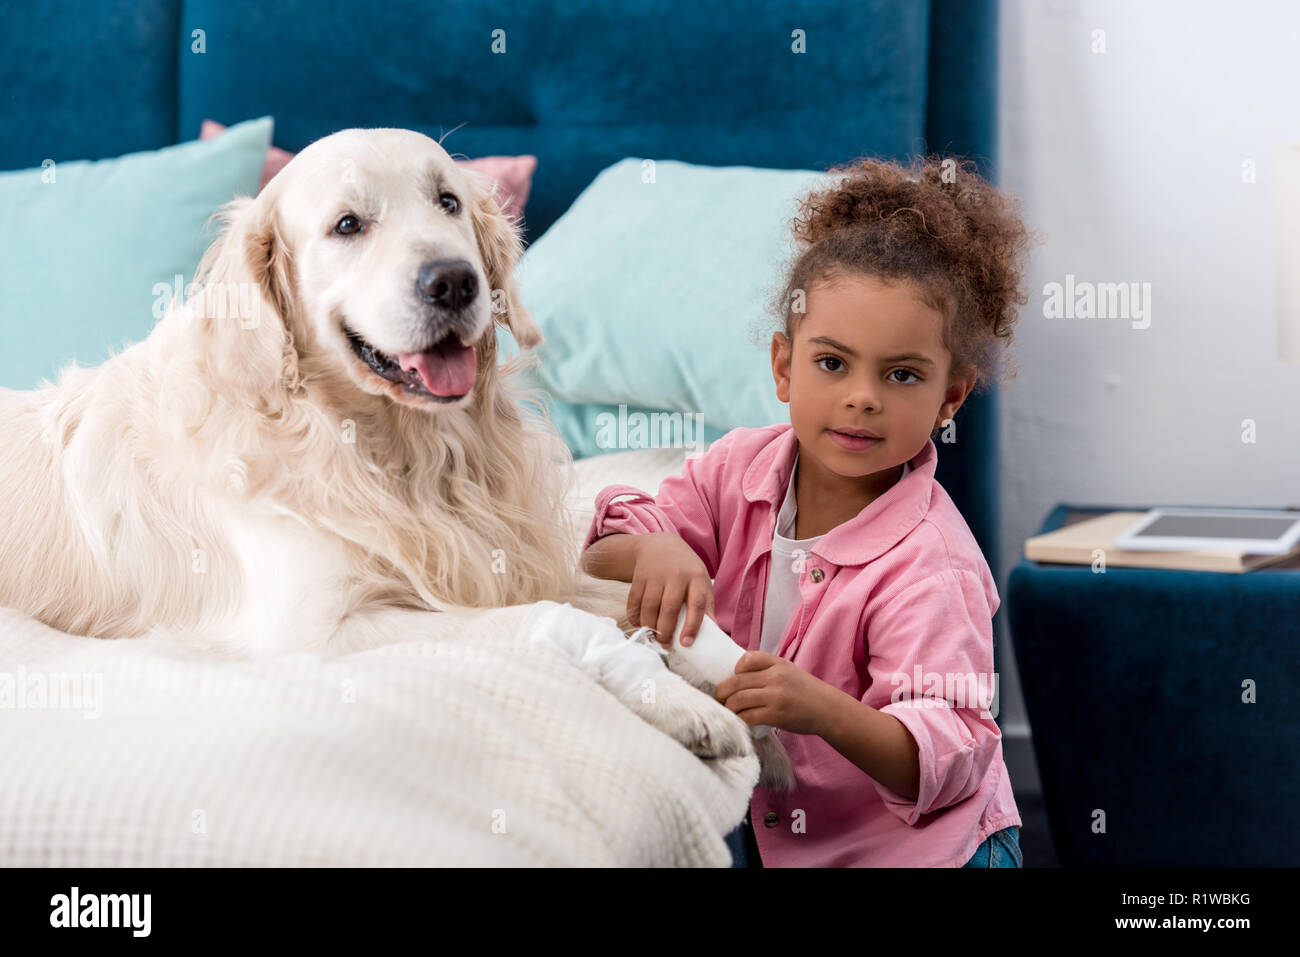 Curly african american child sitting near bandages paw retriever - Stock Image